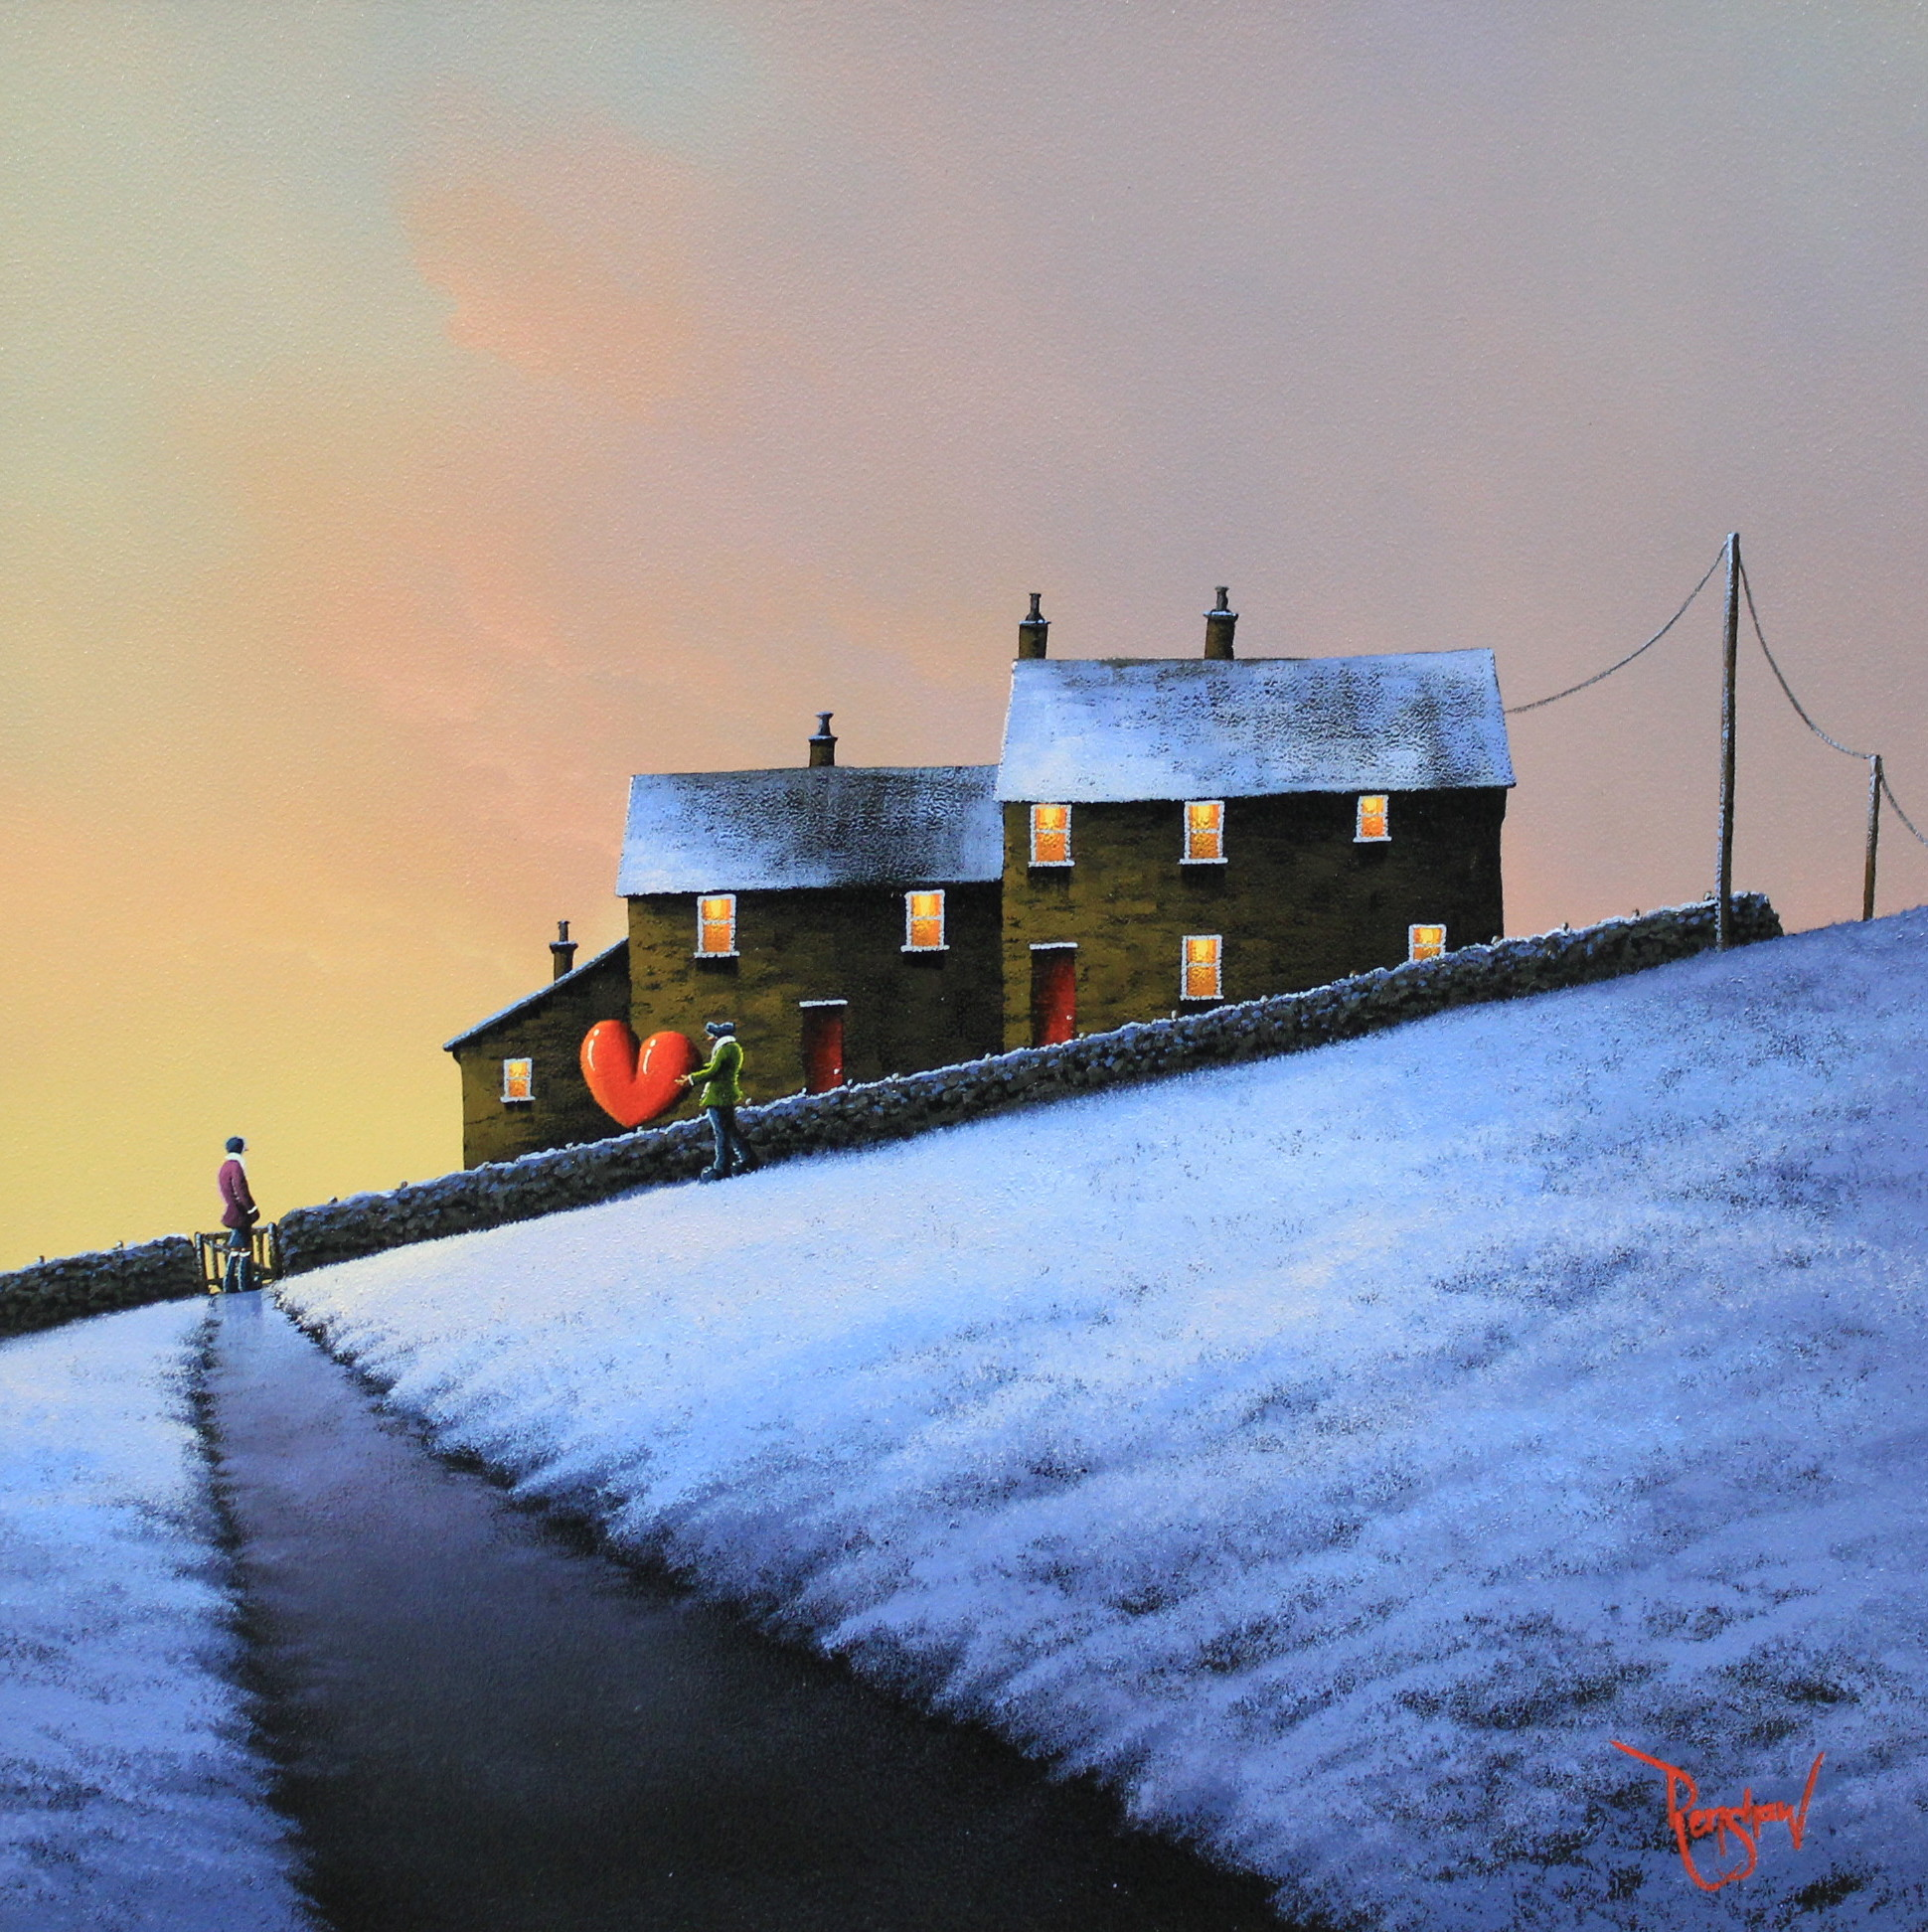 An original oil painting by David Renshaw, a continuation of his Northern Romance series inspired by the Lake District. Standing by a gate at the end of a path is Doris looking up towards Ted who is carrying a red love heart down a snowy hill to meet her. Both are in front of a stone wall, behind which are two houses with red doors and orange/yellow glowing windows. As the hill they stand on descends to the left, on the horizon warmer yellow and pink tones are present in the sky from a distant low sun.